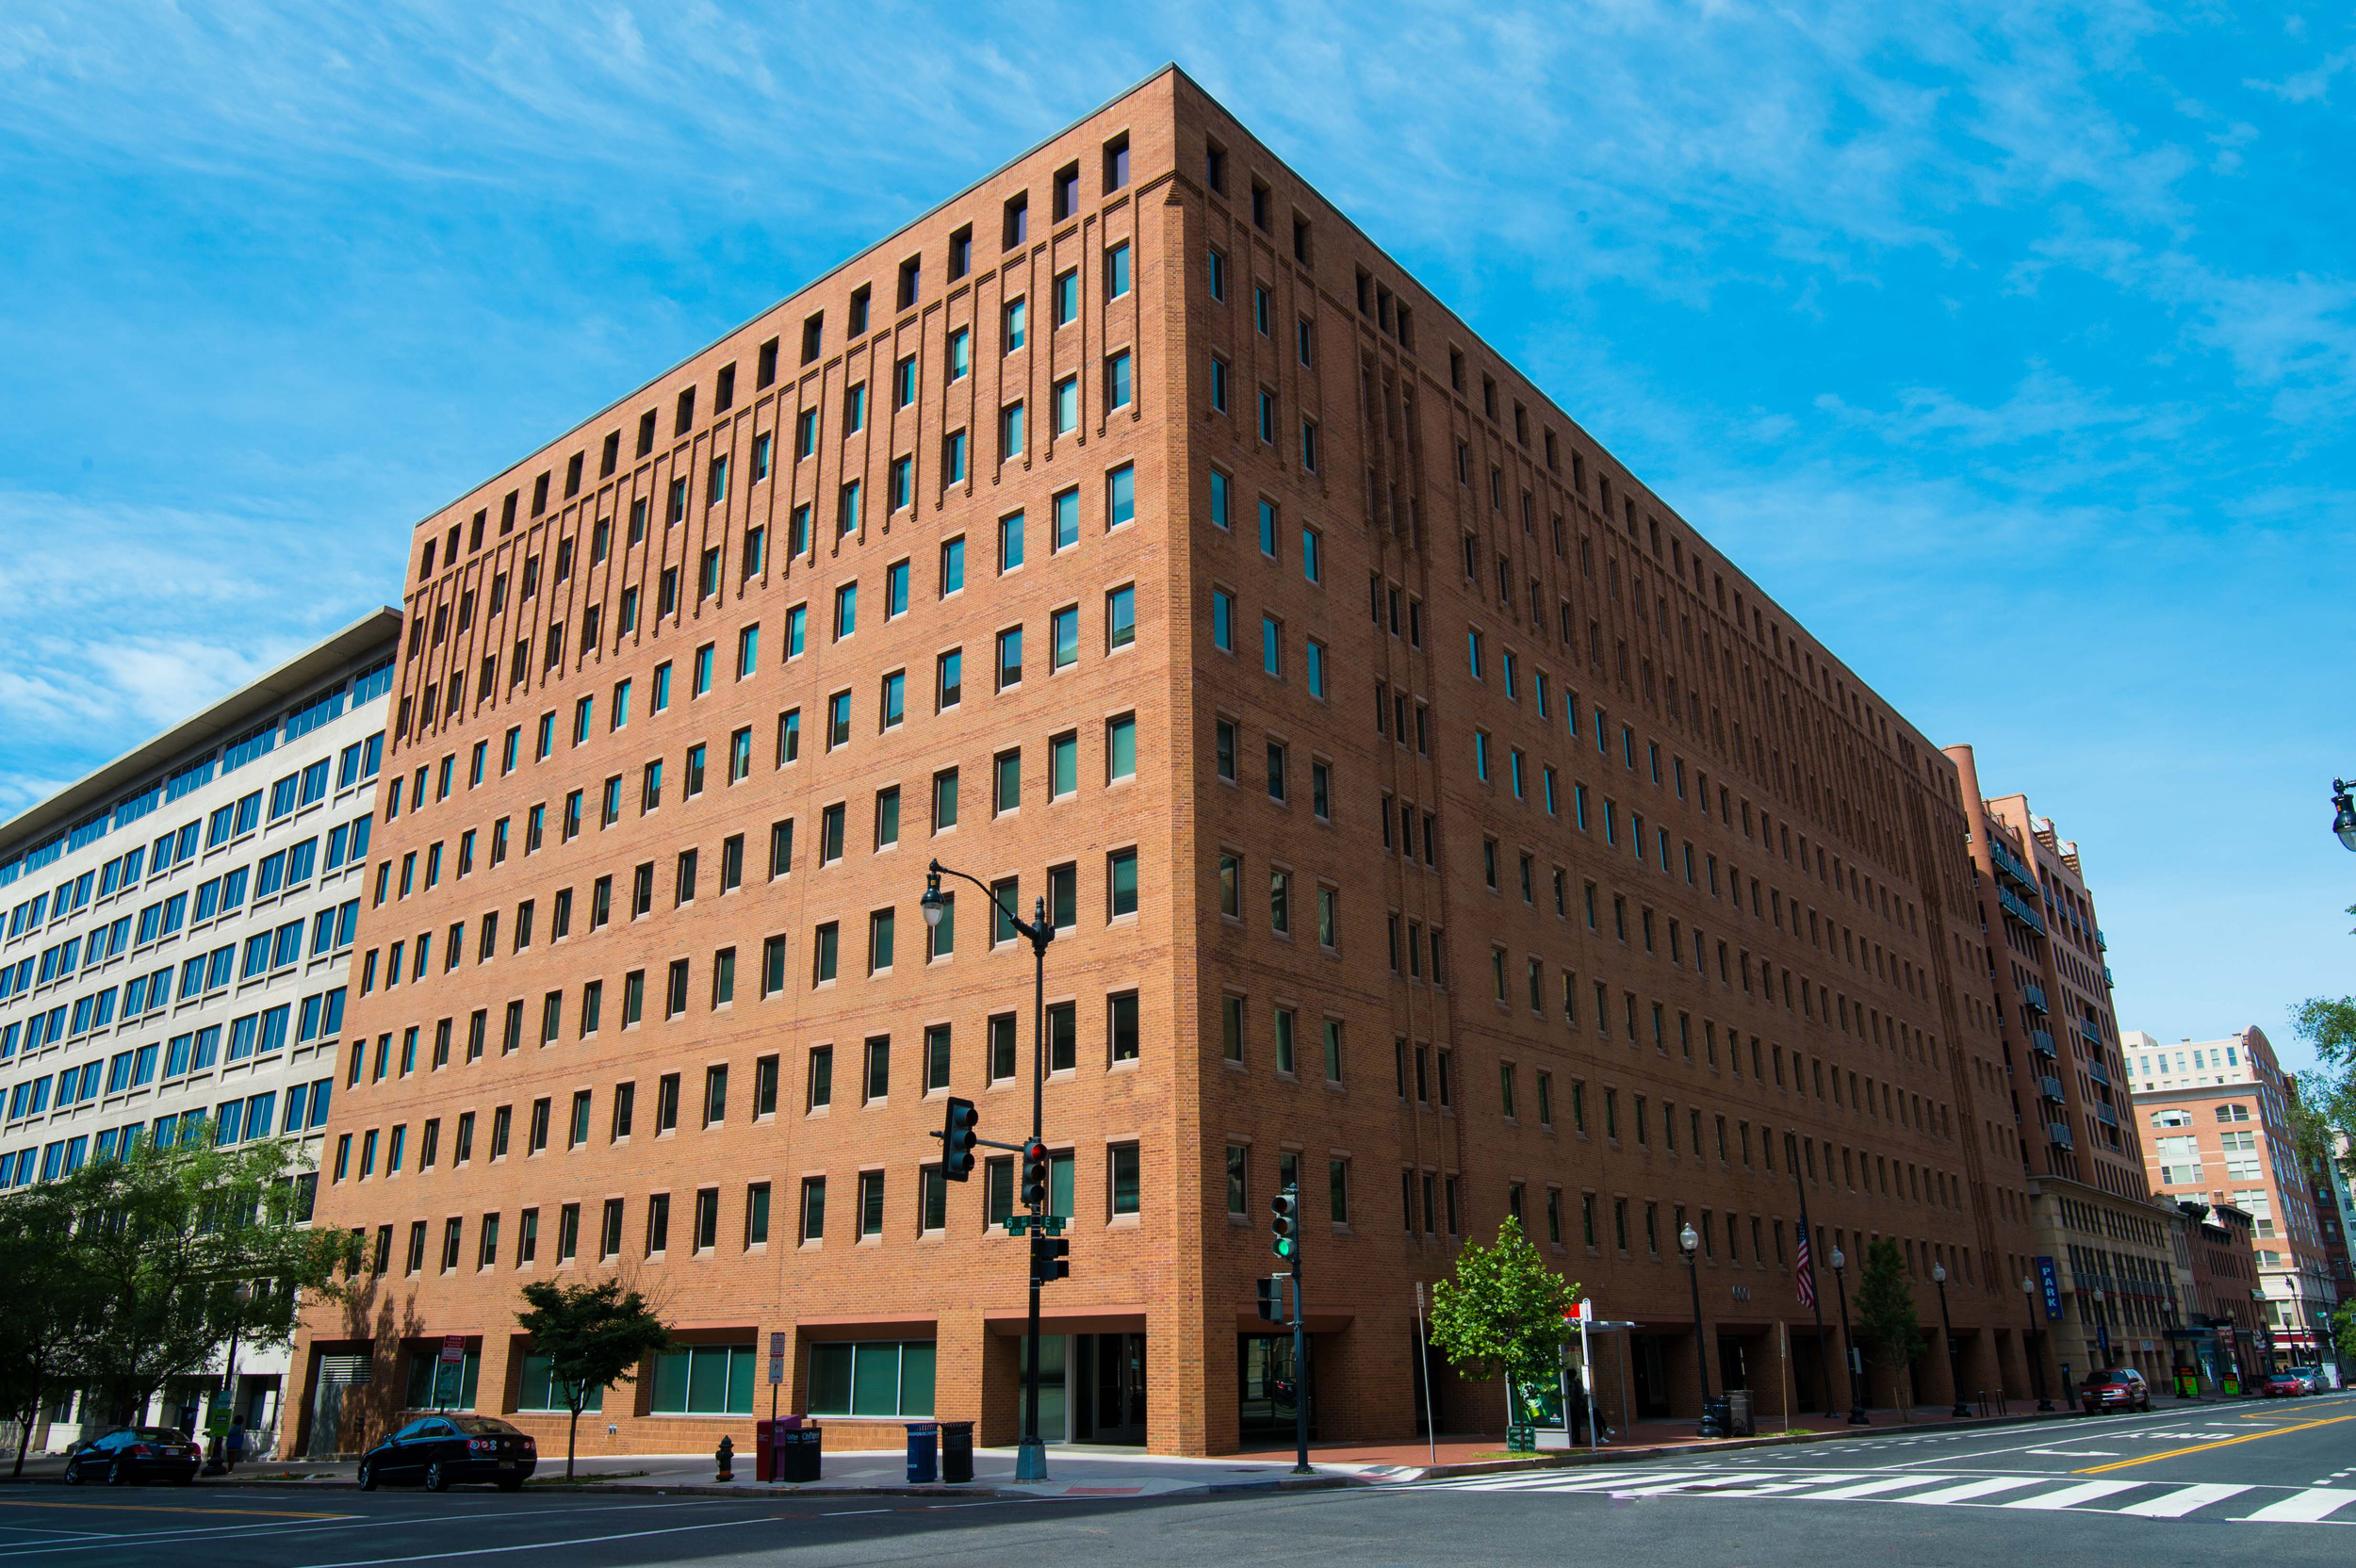 600 E Street, NW; Washington, DC 20004